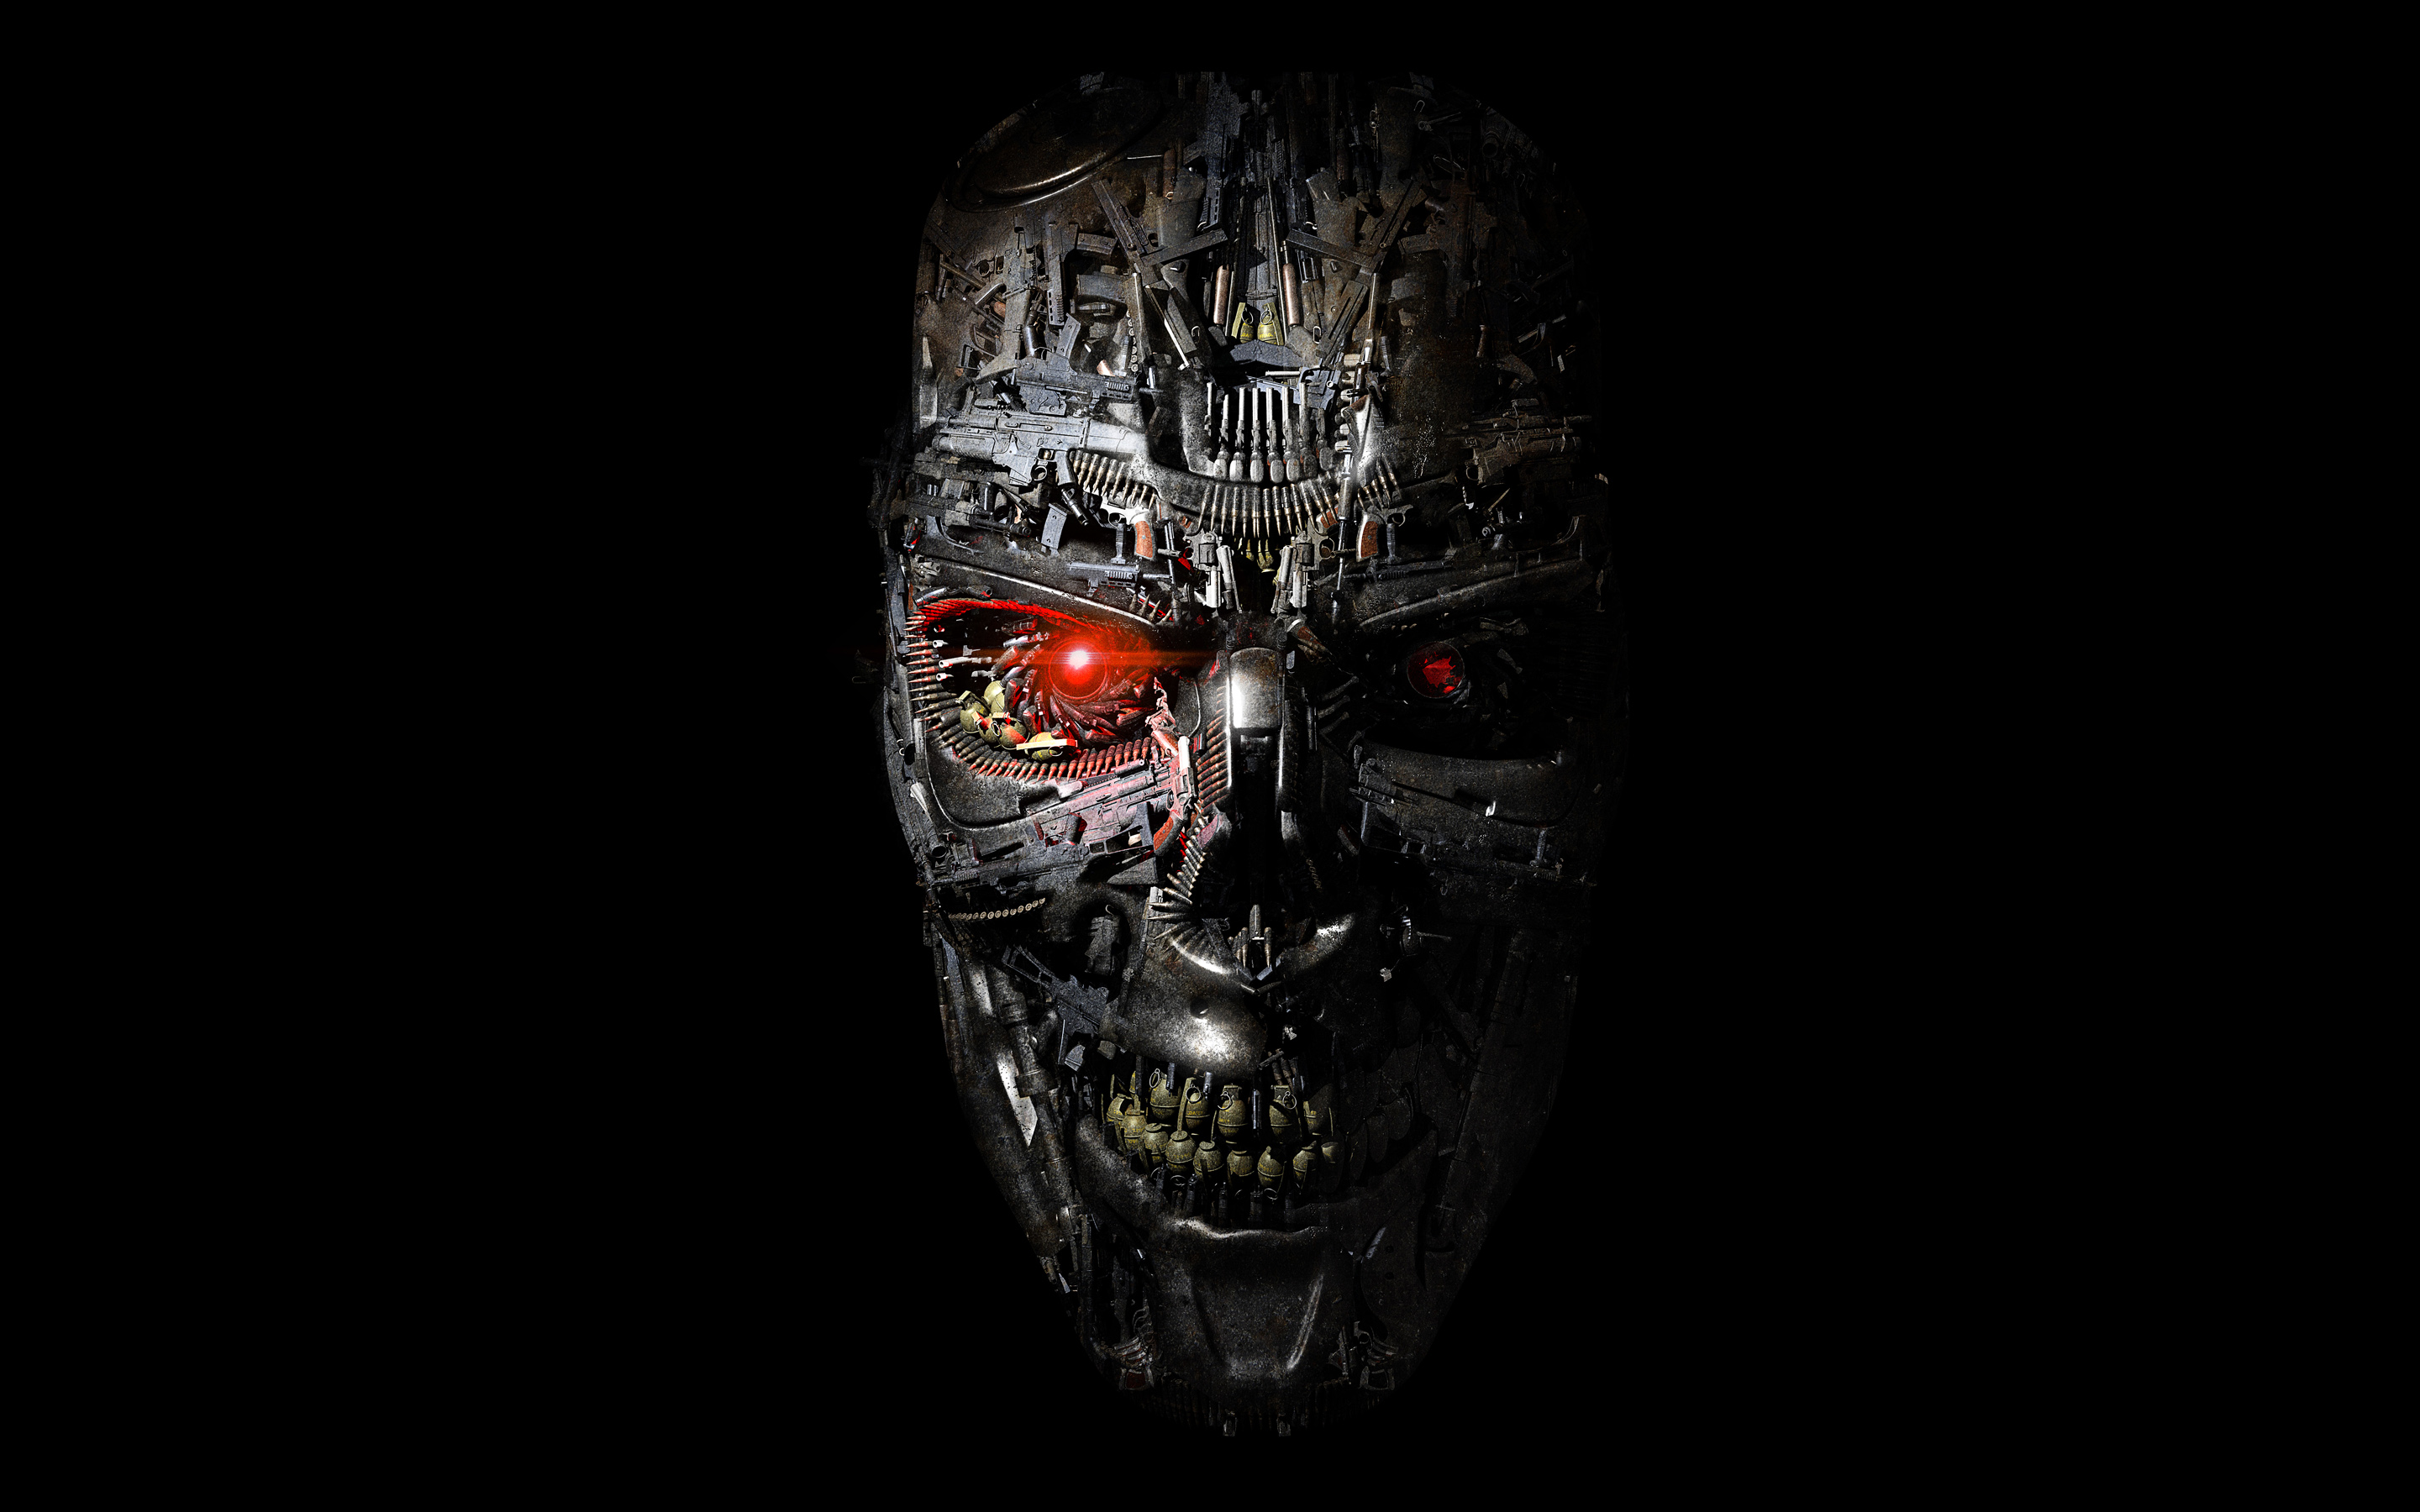 Robot 4k Wallpapers For Your Desktop Or Mobile Screen Free